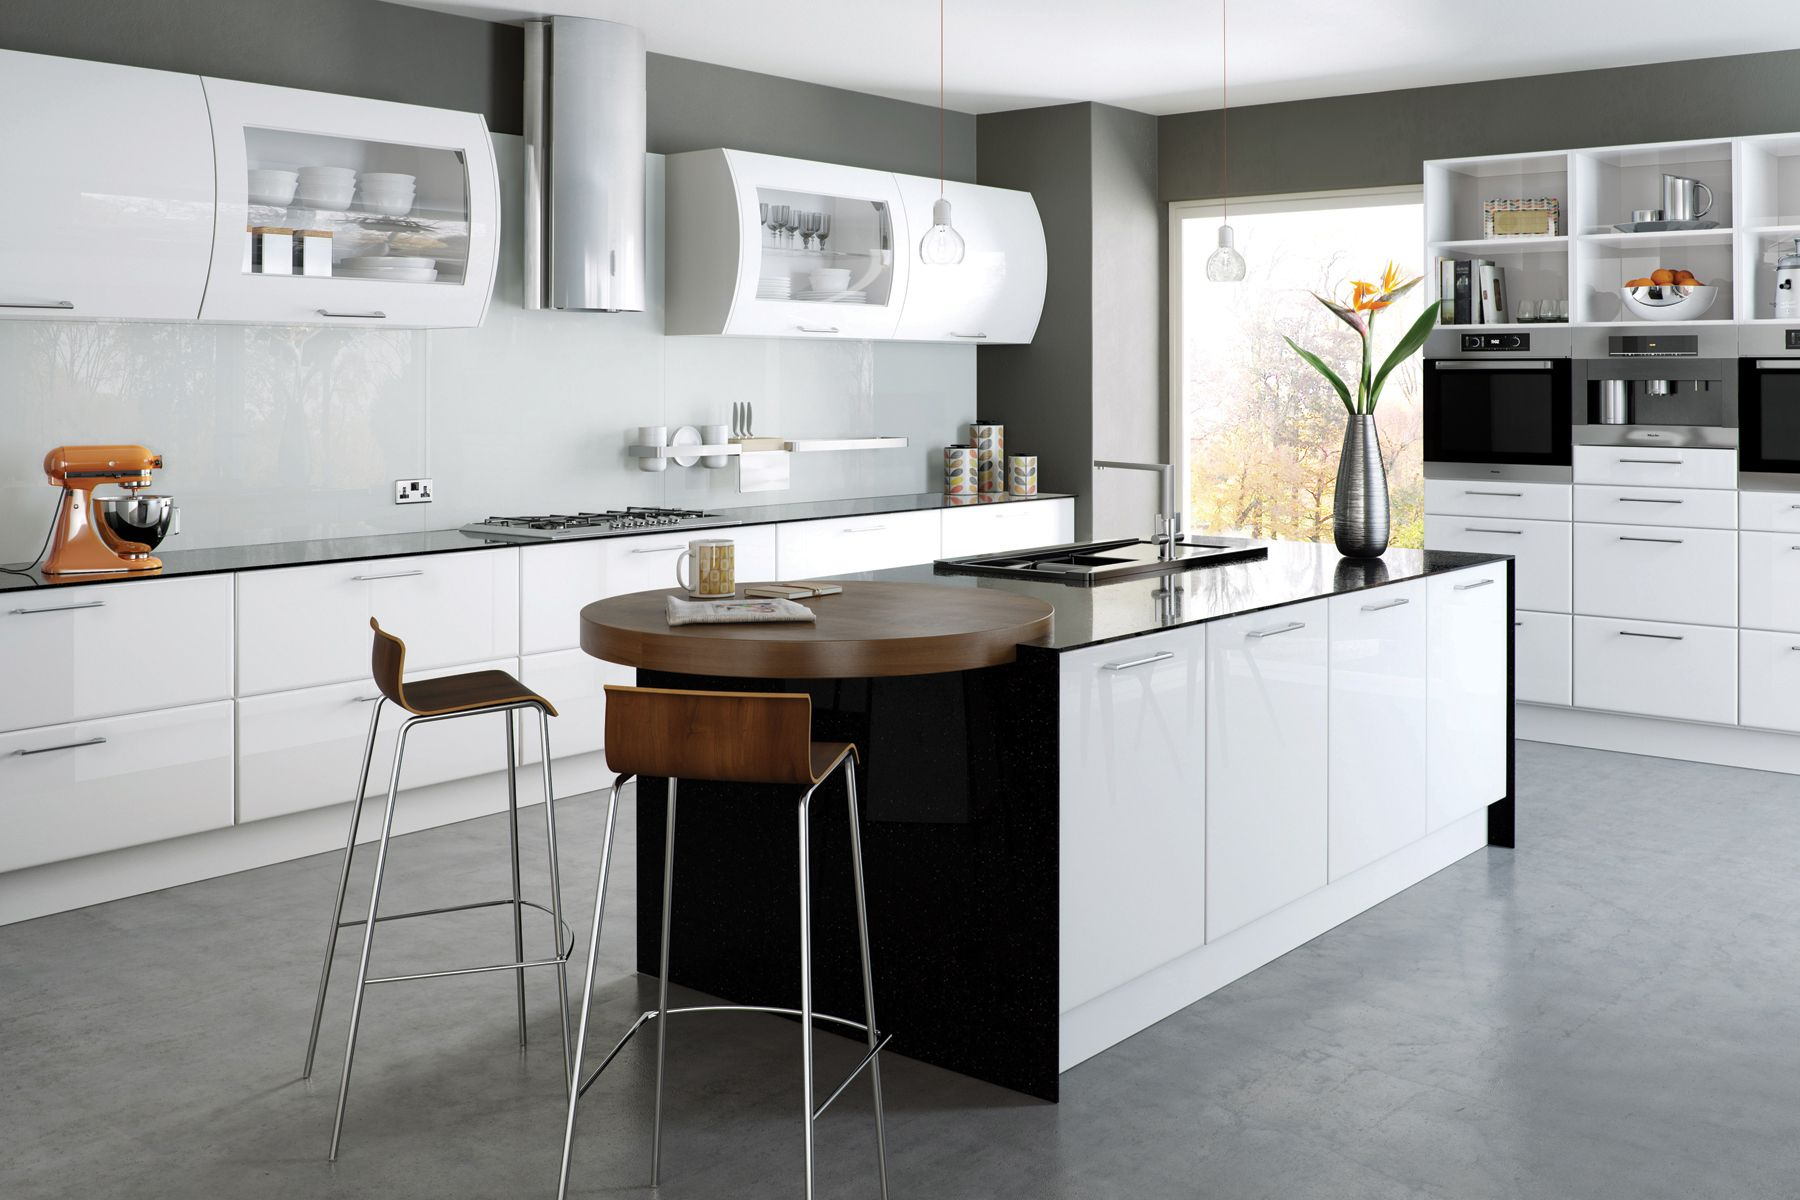 ^ 1000+ images about Modern kitchens on Pinterest he black ...